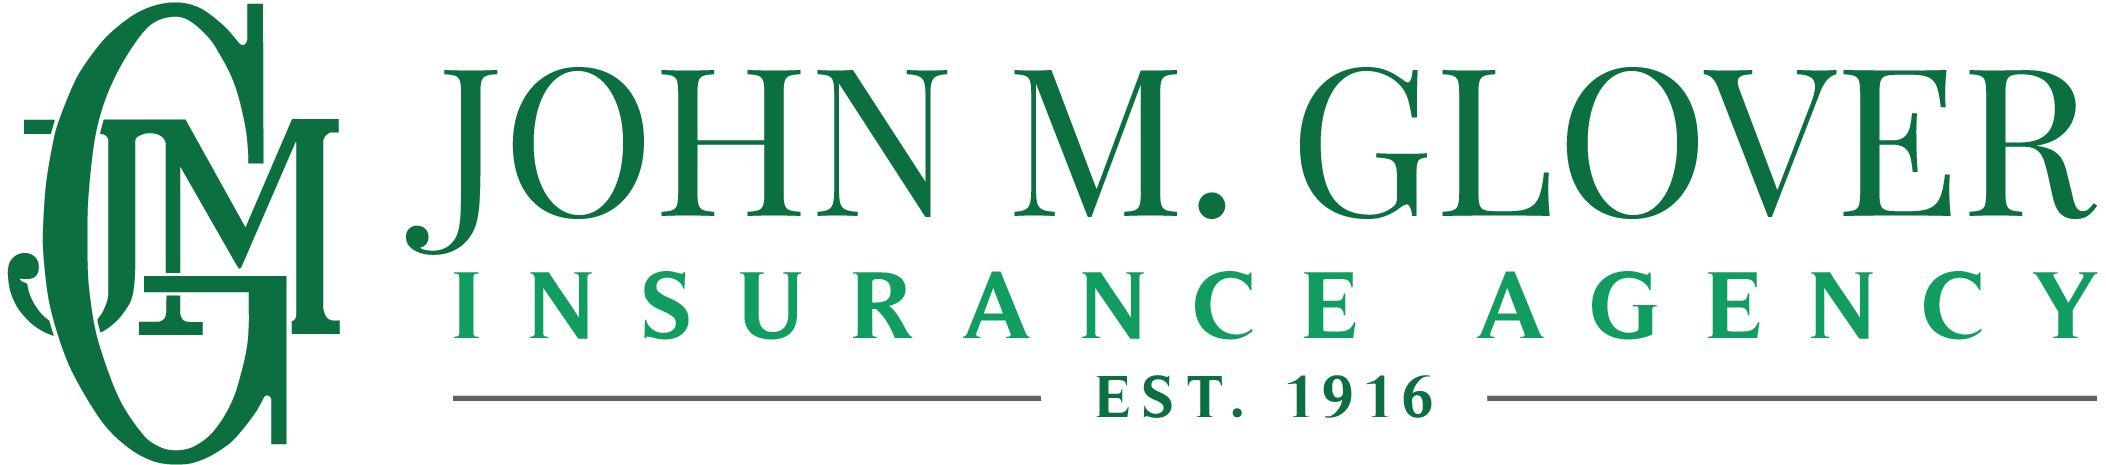 JMG Insurance Agency Logo